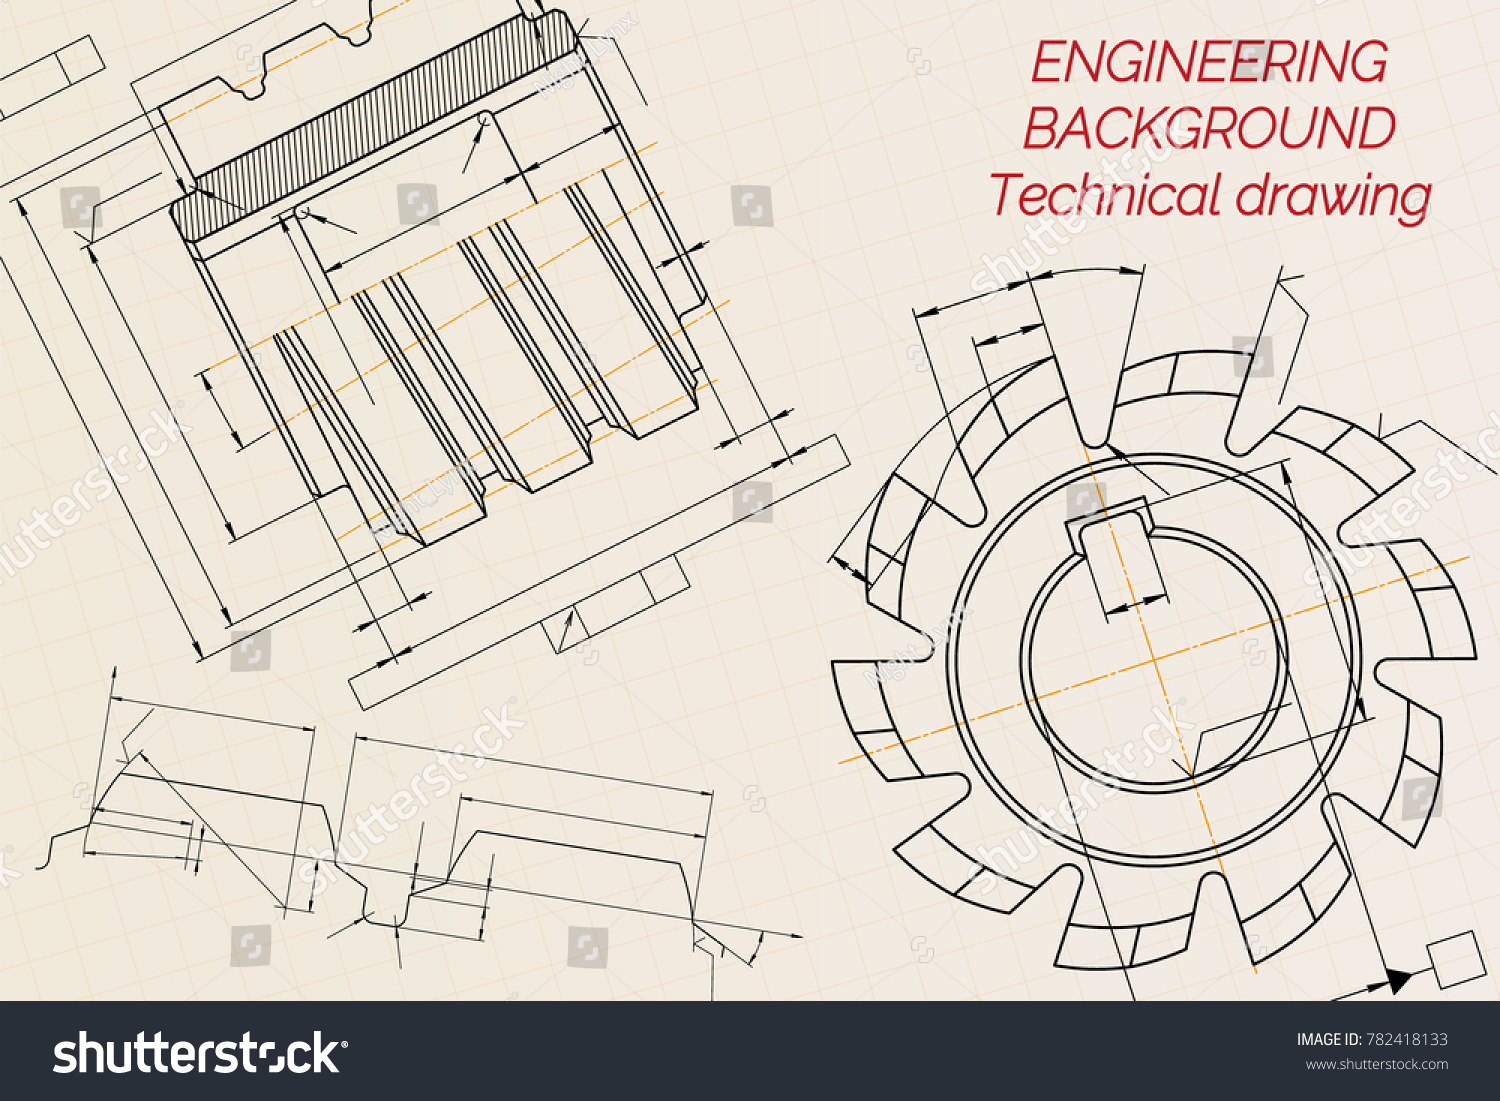 Mechanical engineering drawings on beige technical vectores en stock mechanical engineering drawings on beige technical paper background cutting tools milling cutter industrial malvernweather Image collections